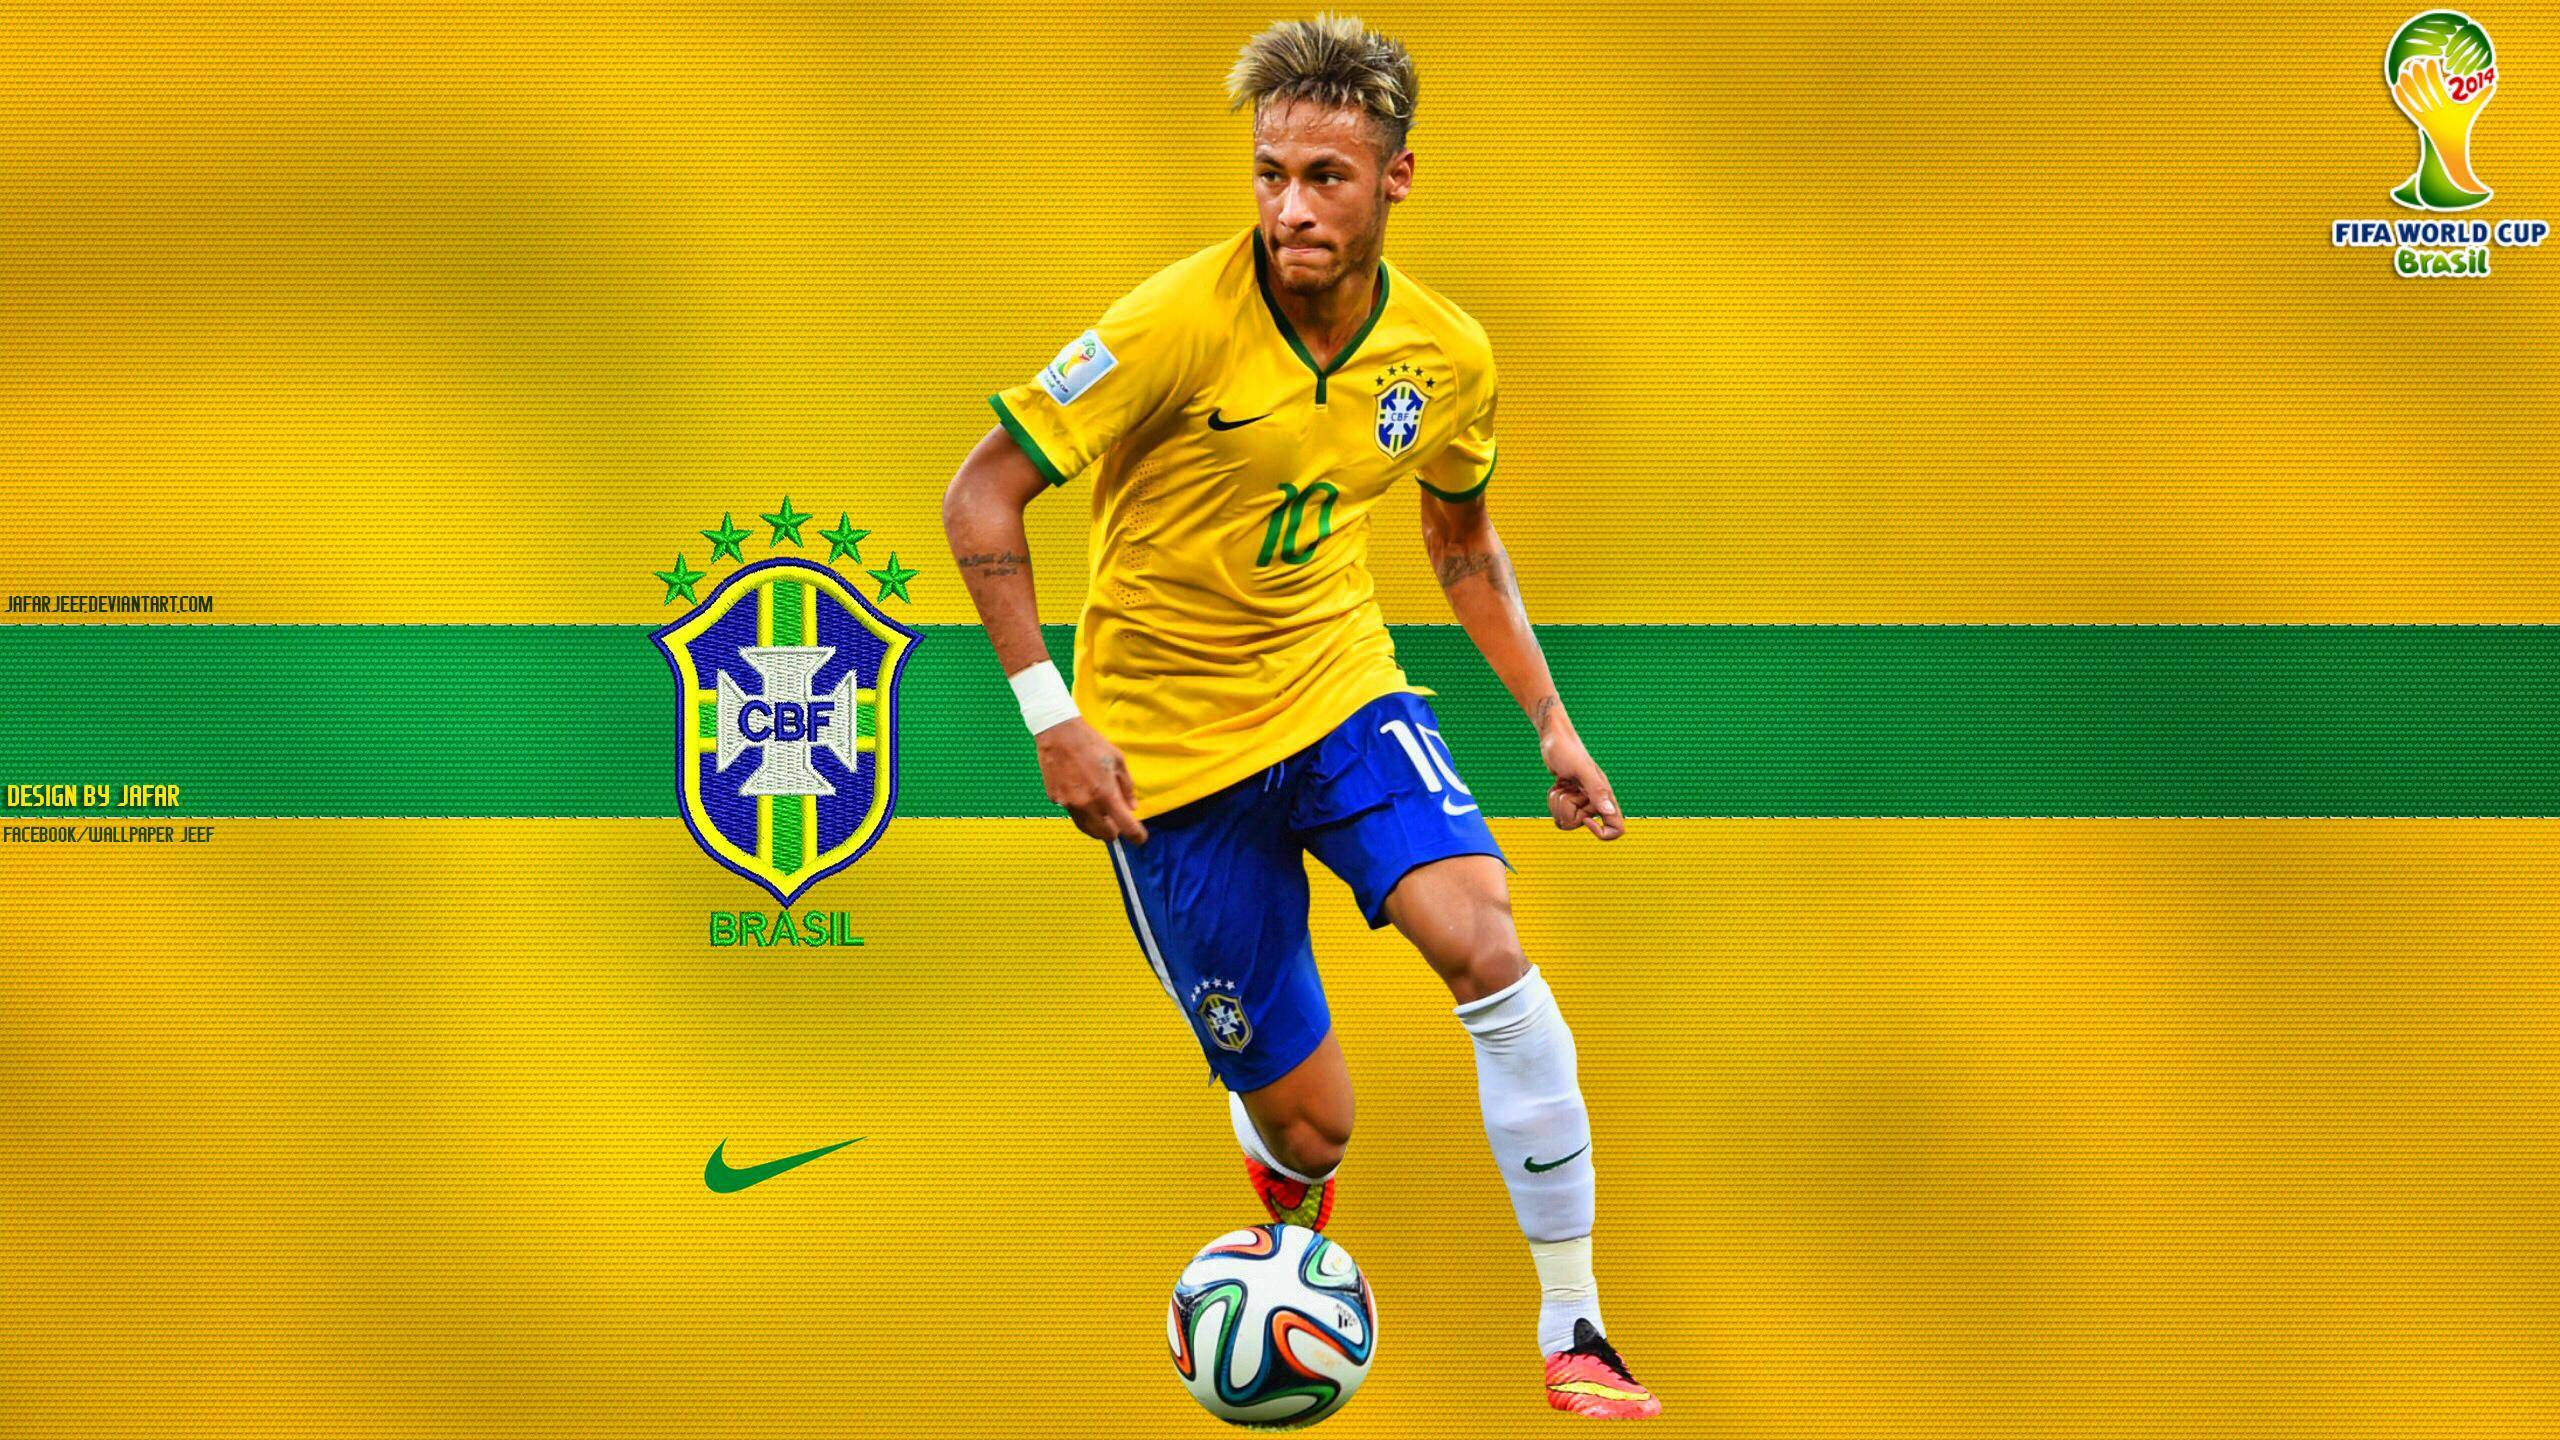 neymar wallpapers, pictures, images